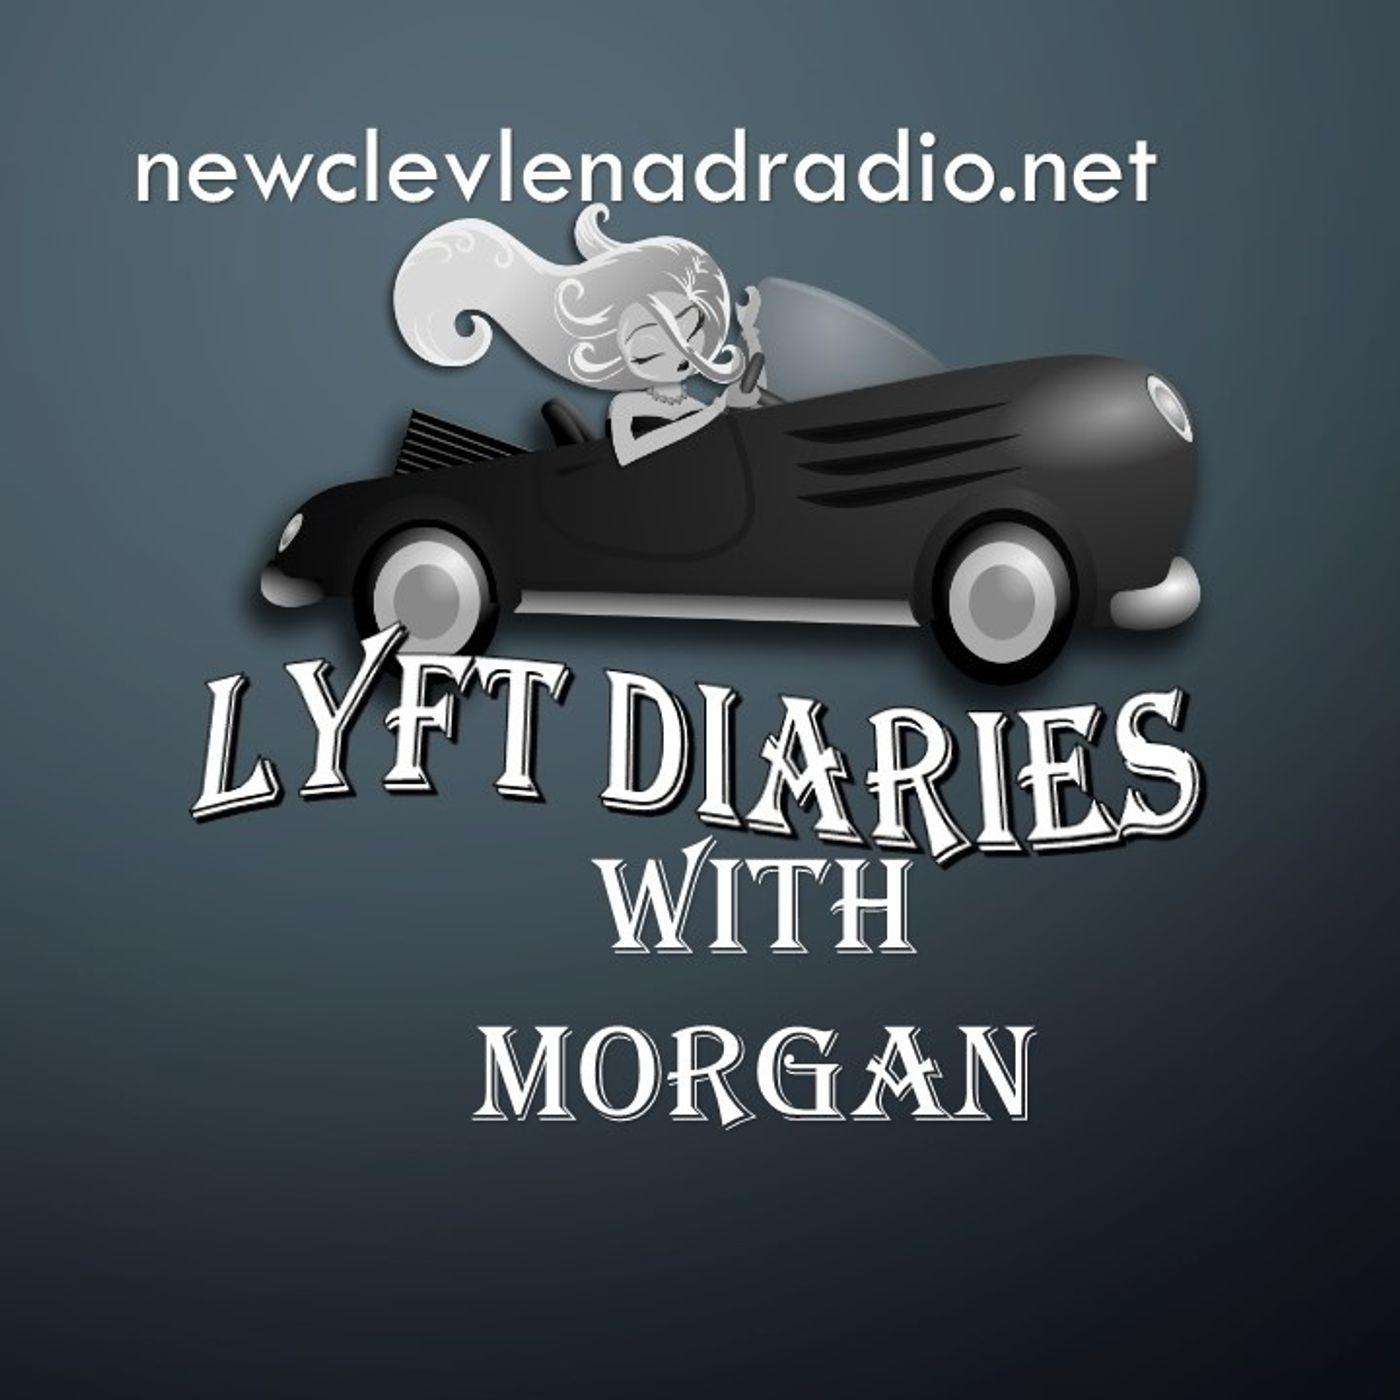 Lyft Diaries with Morgan 9_26_19